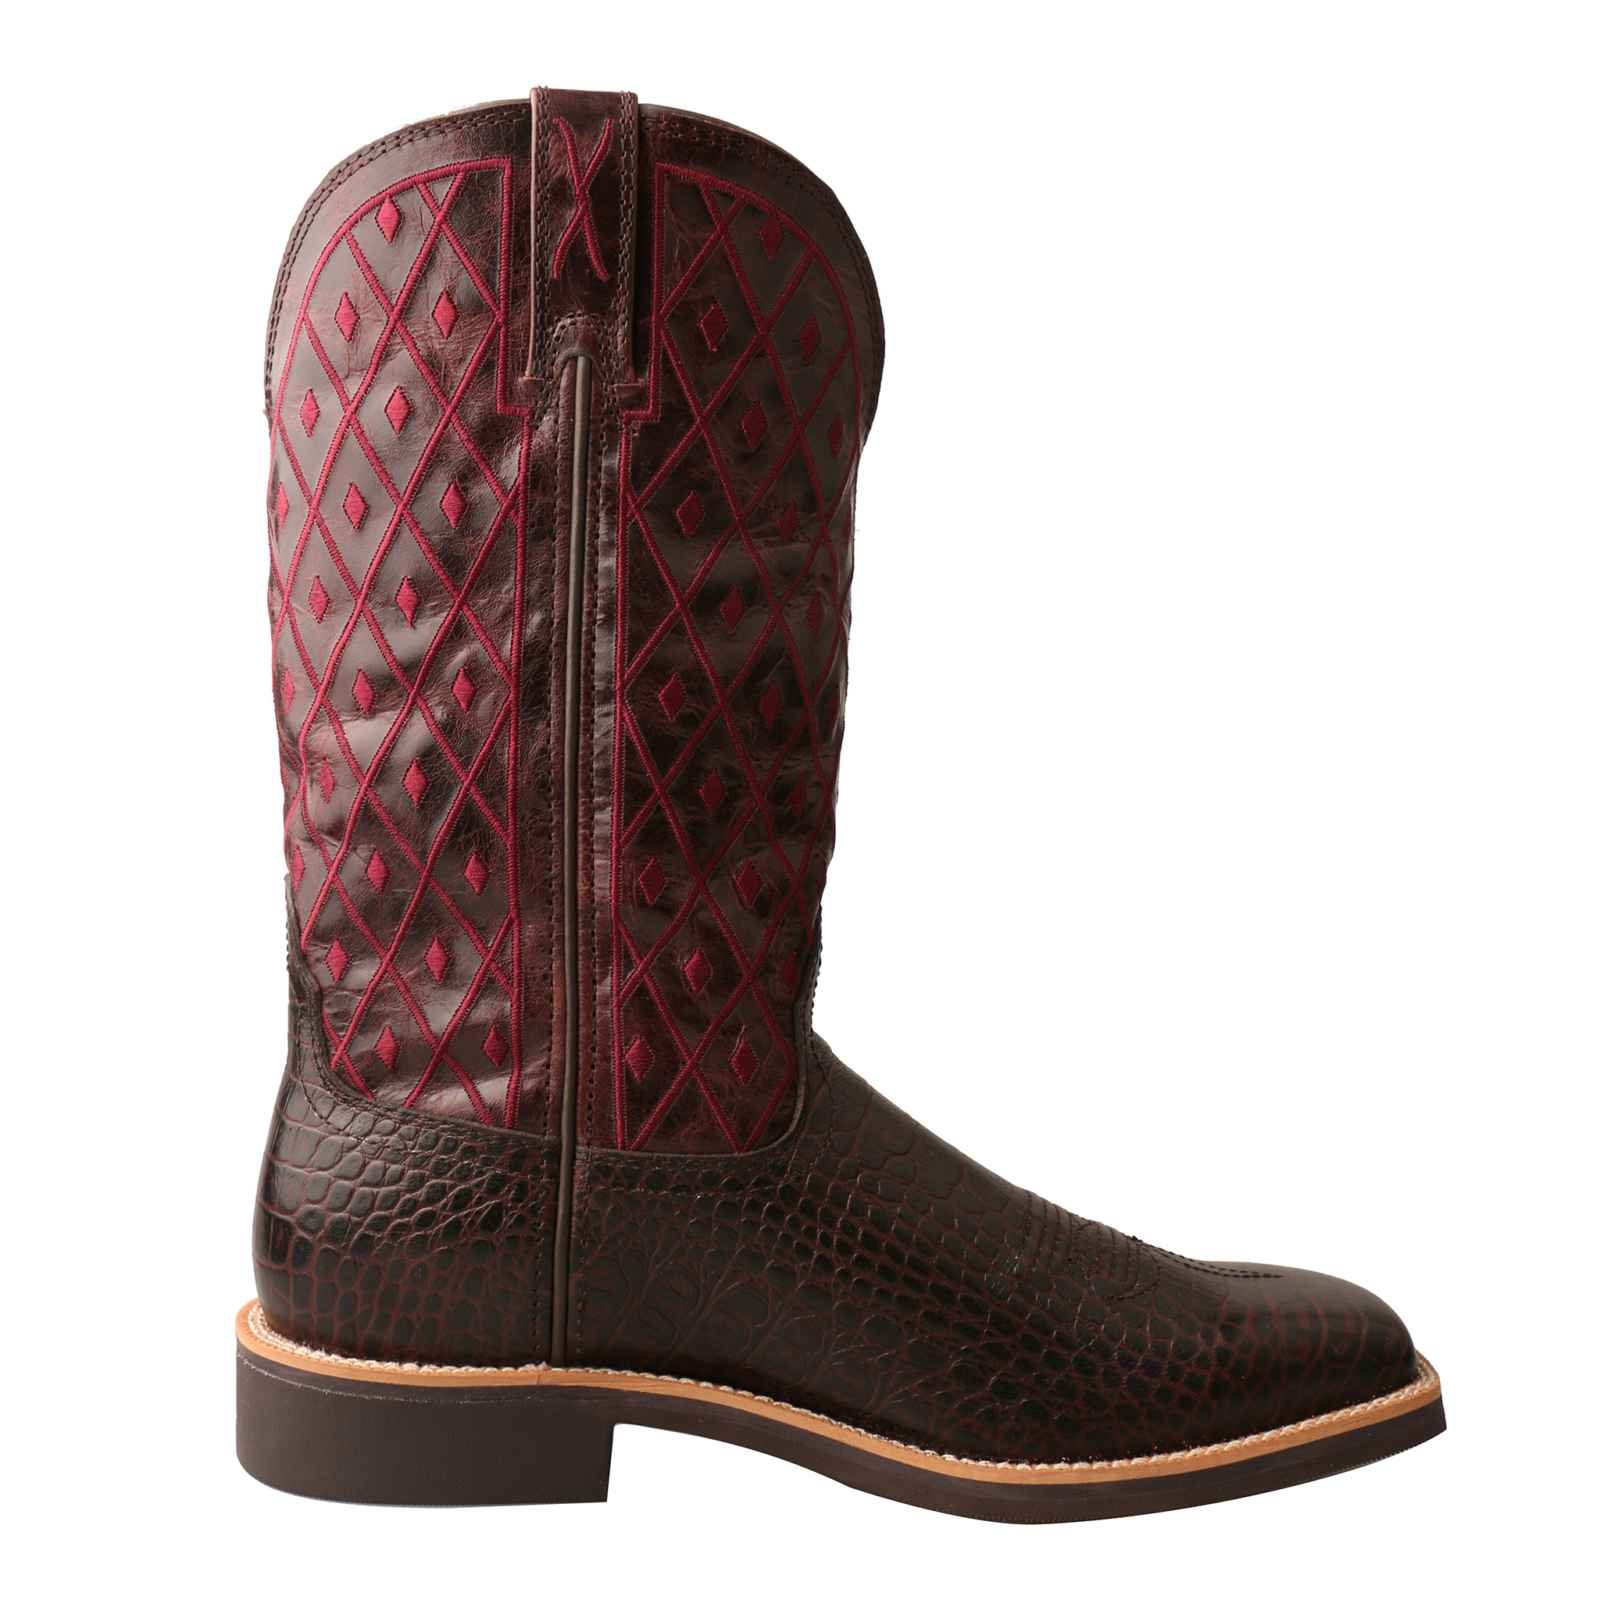 Twisted X Women's Top Hand Caiman Print Square Toe Cowgirl Boots (6.5) by Twisted X (Image #6)